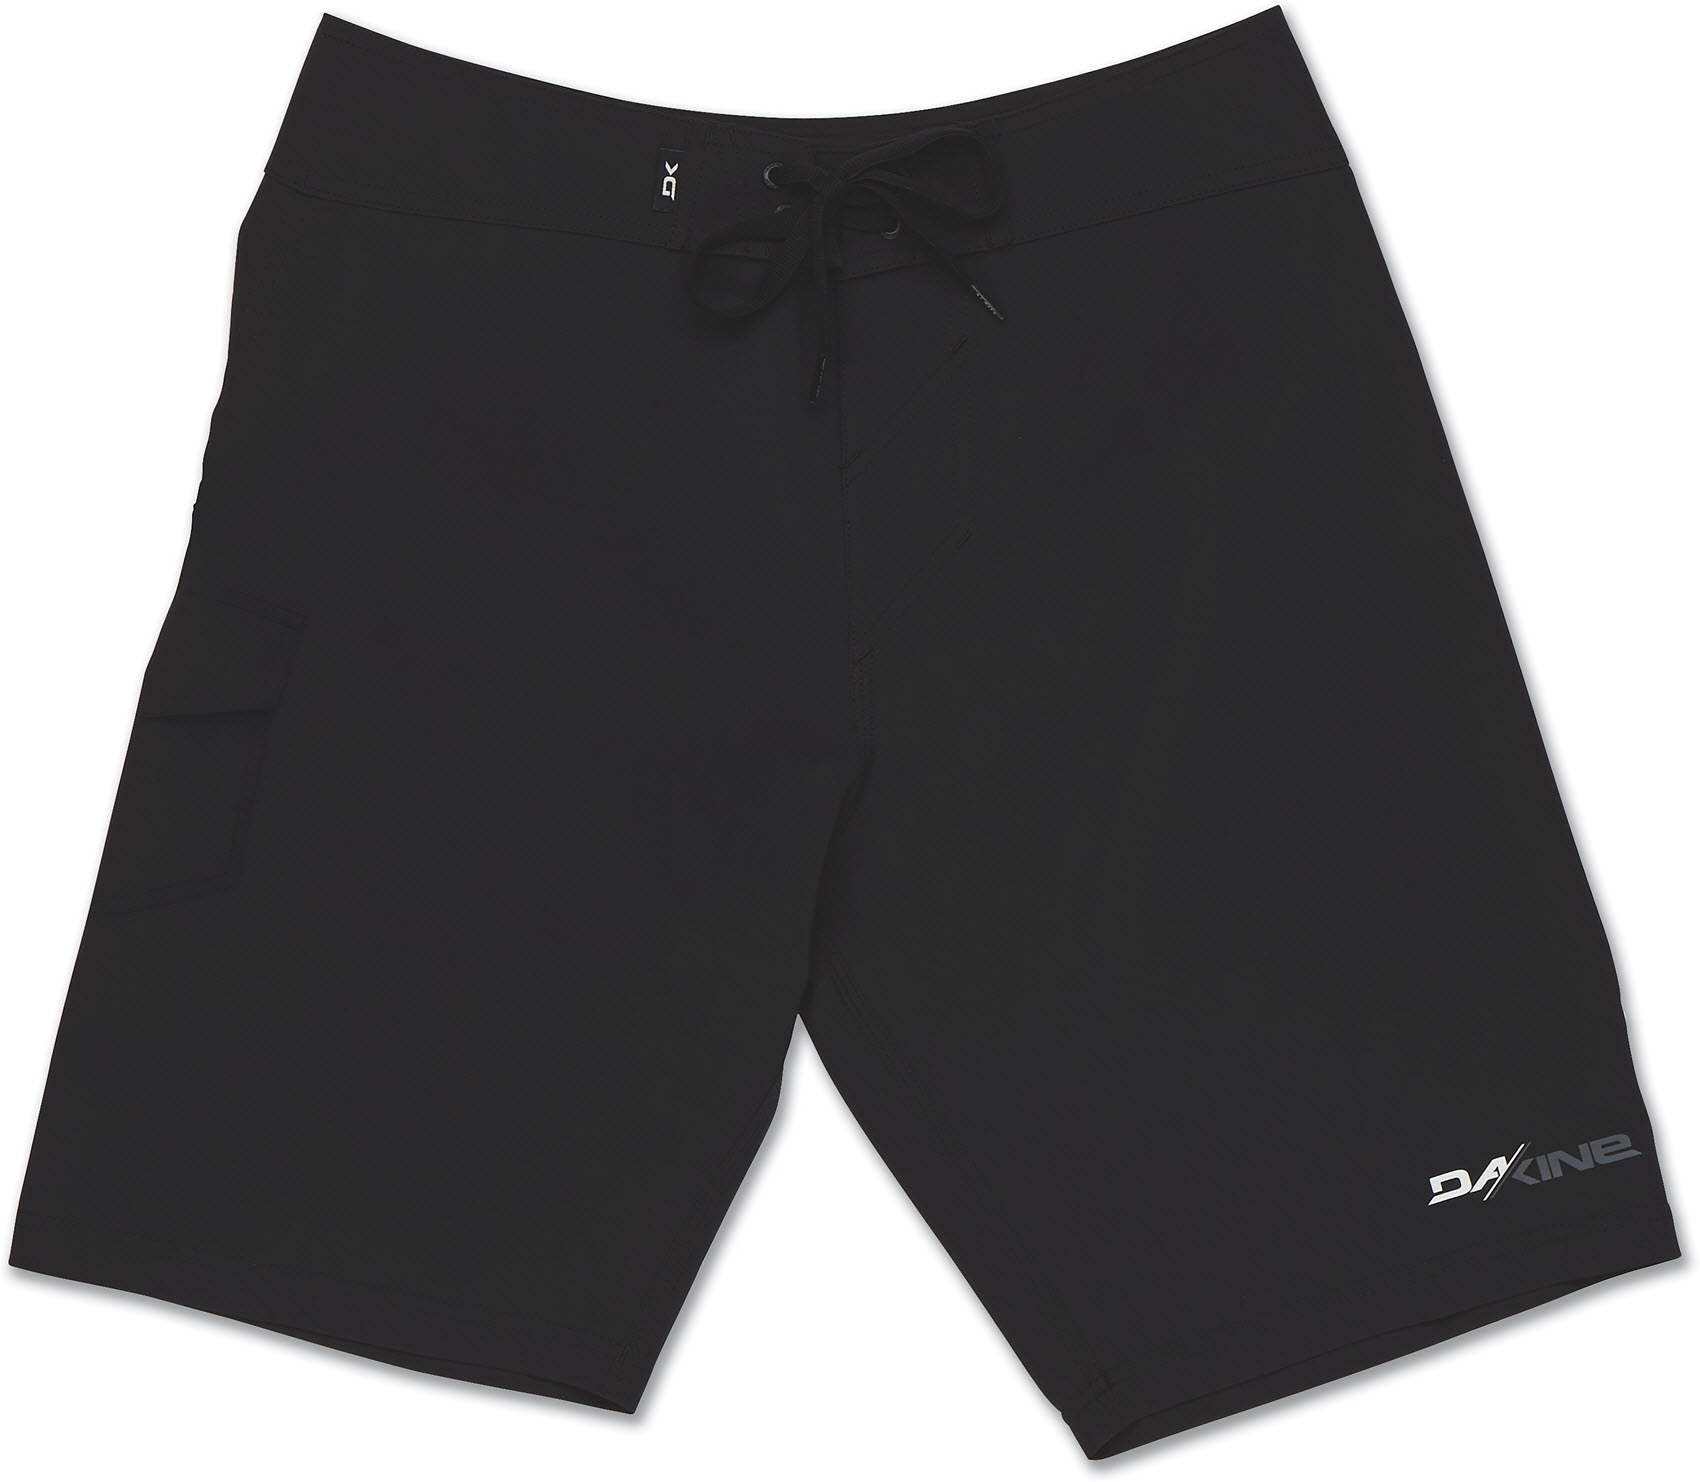 dakine prime board short 2016 in black 30